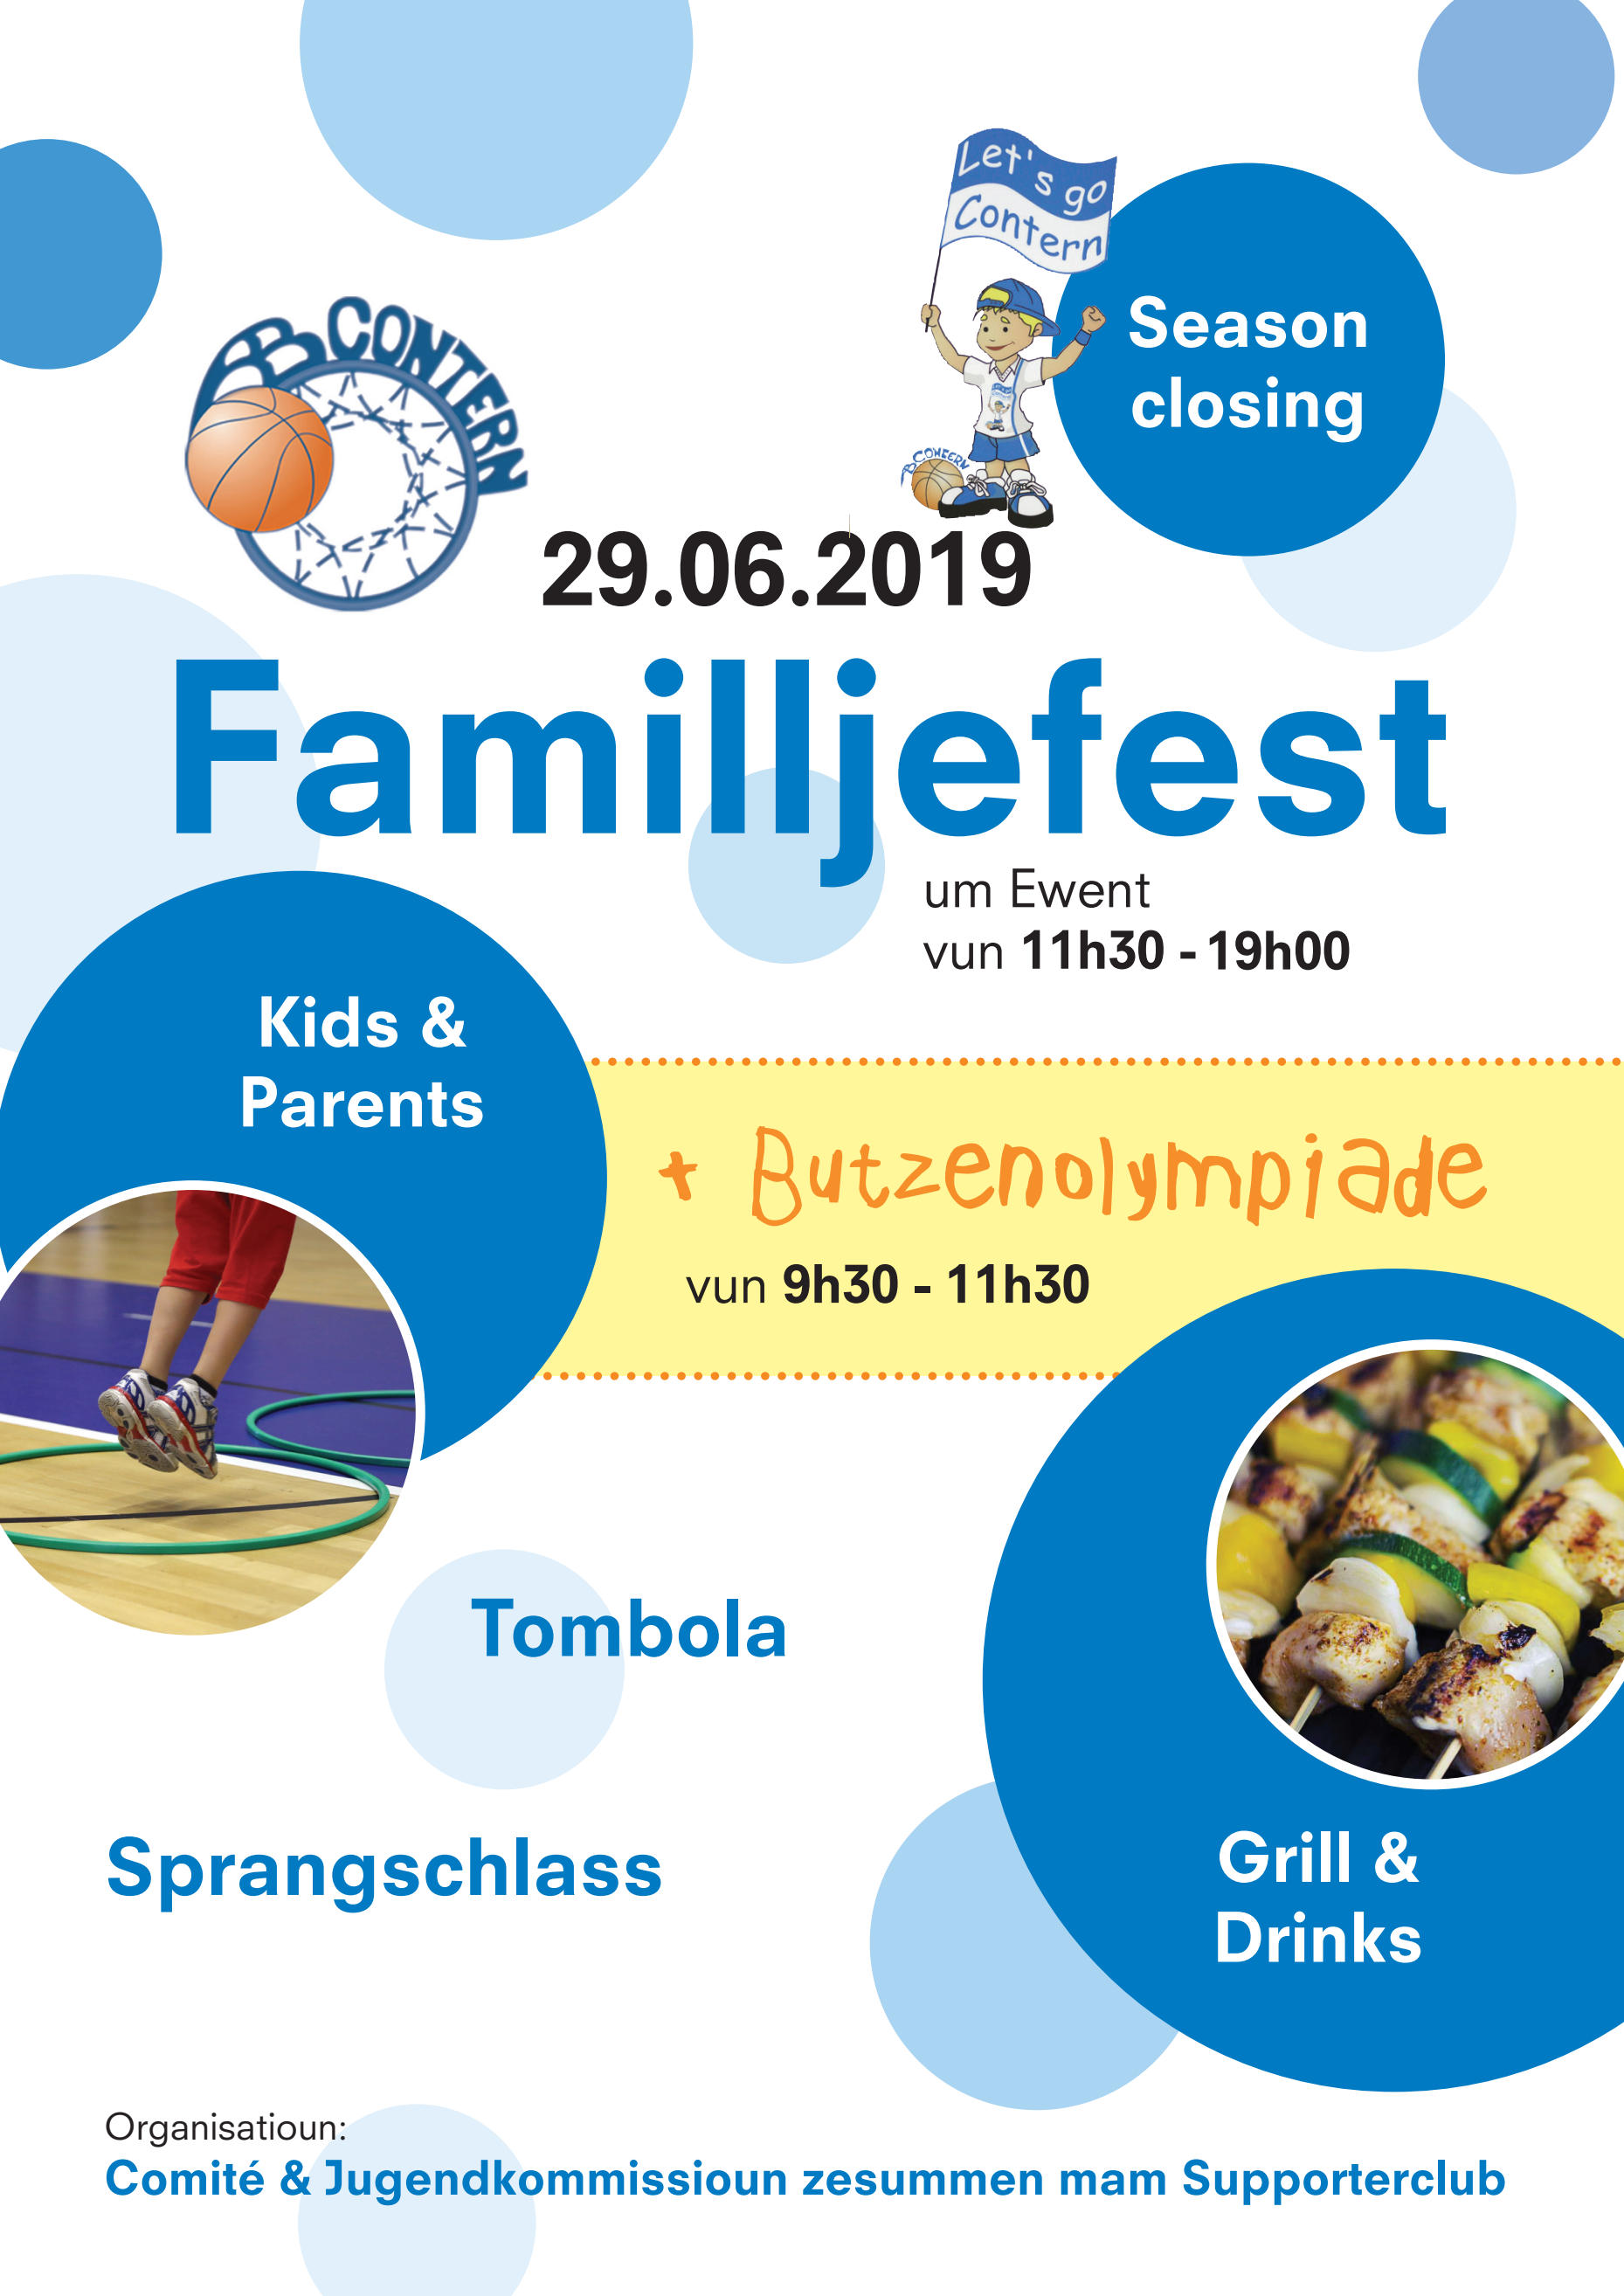 29 June - Um EWENT  -  Fun, BBQ , Games, Bar, Icecreams etc... Let's GO  Be there and have some fun